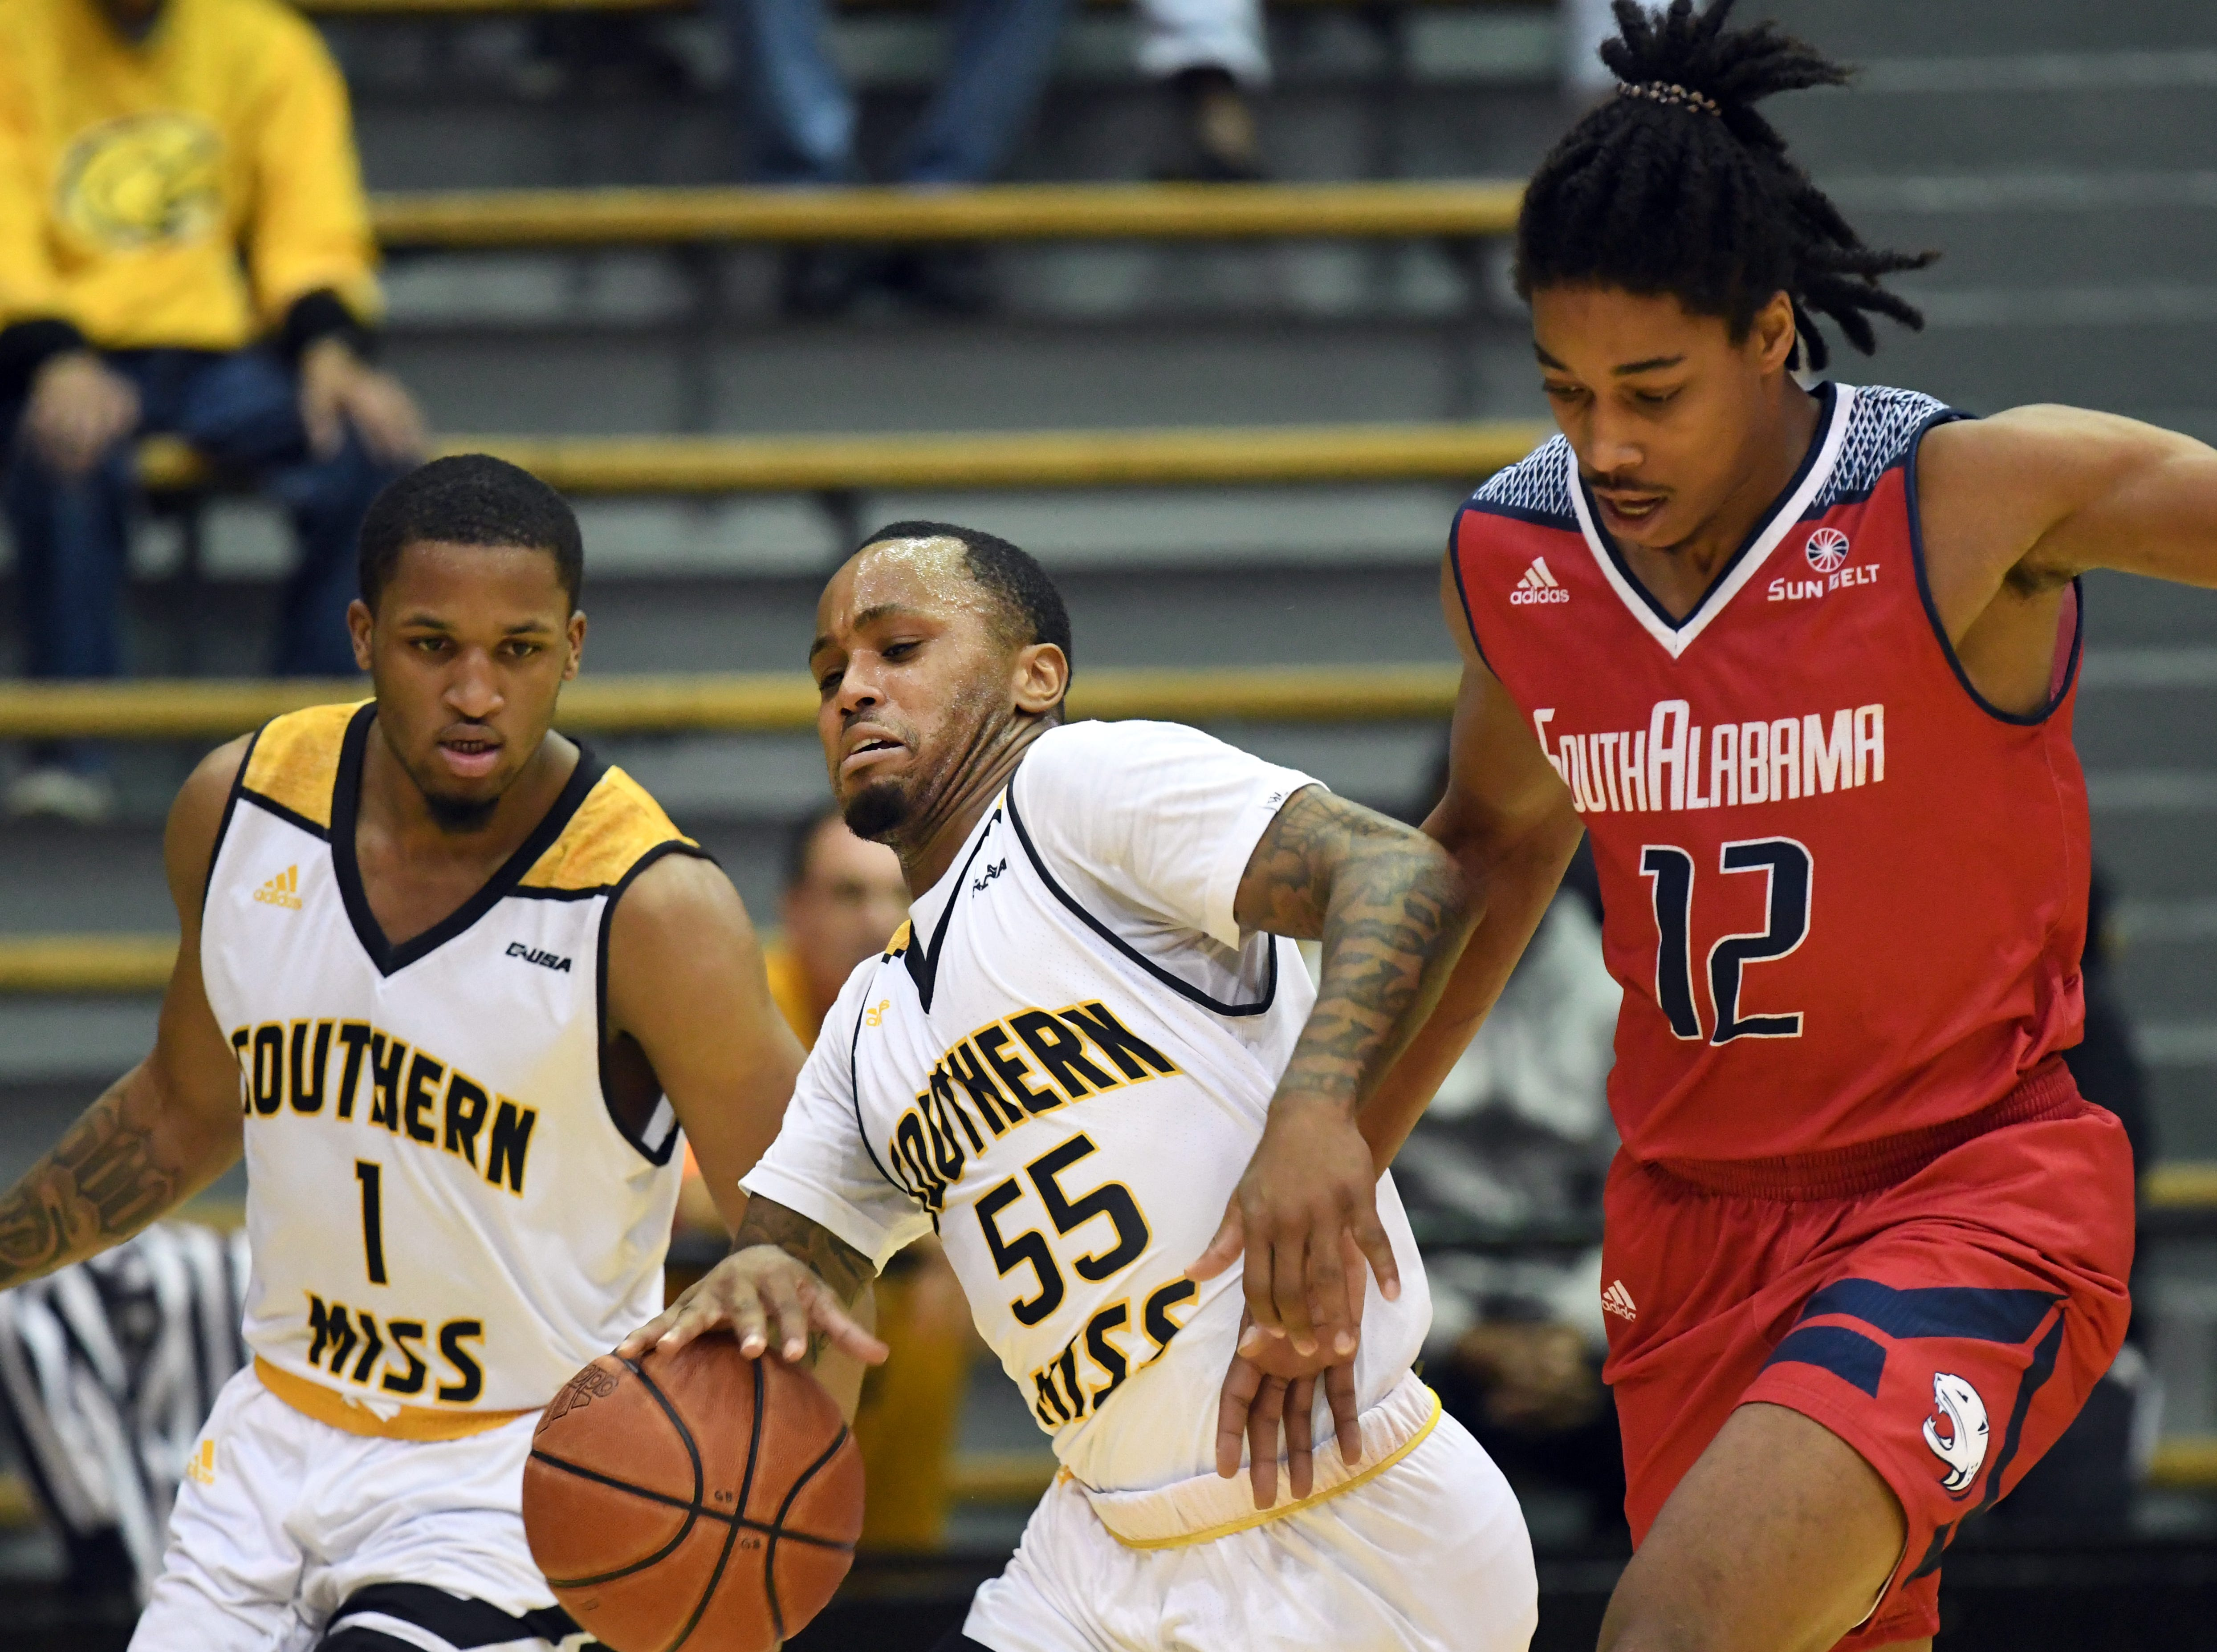 Southern Miss guard Tyree Griffin takes control of the ball in a game against South Alabama in Reed Green Coliseum on Wednesday, November 28, 2018.